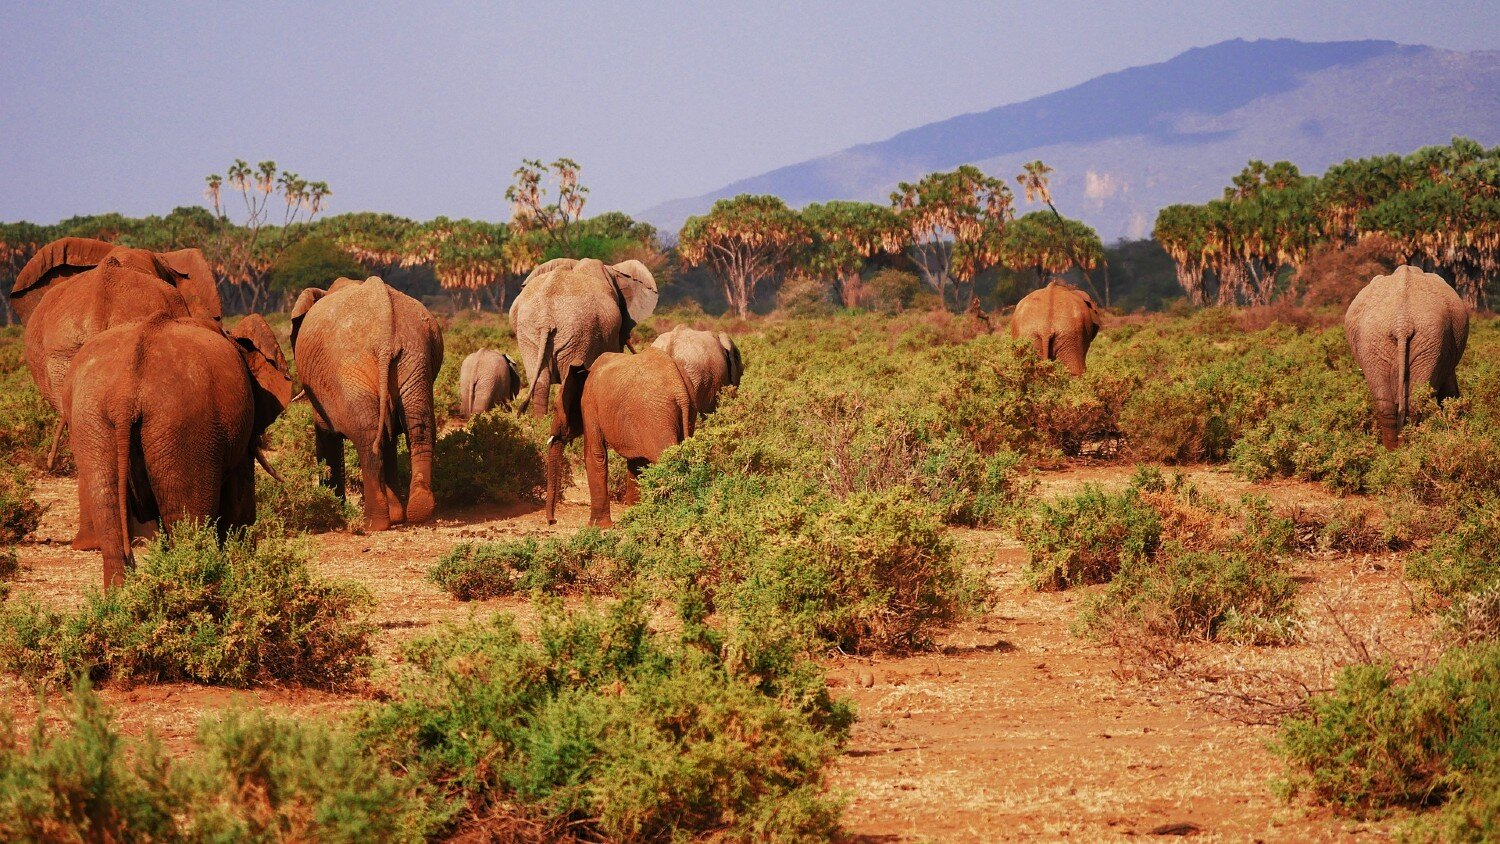 Why Kenya National Parks Should Be on Your Bucket List